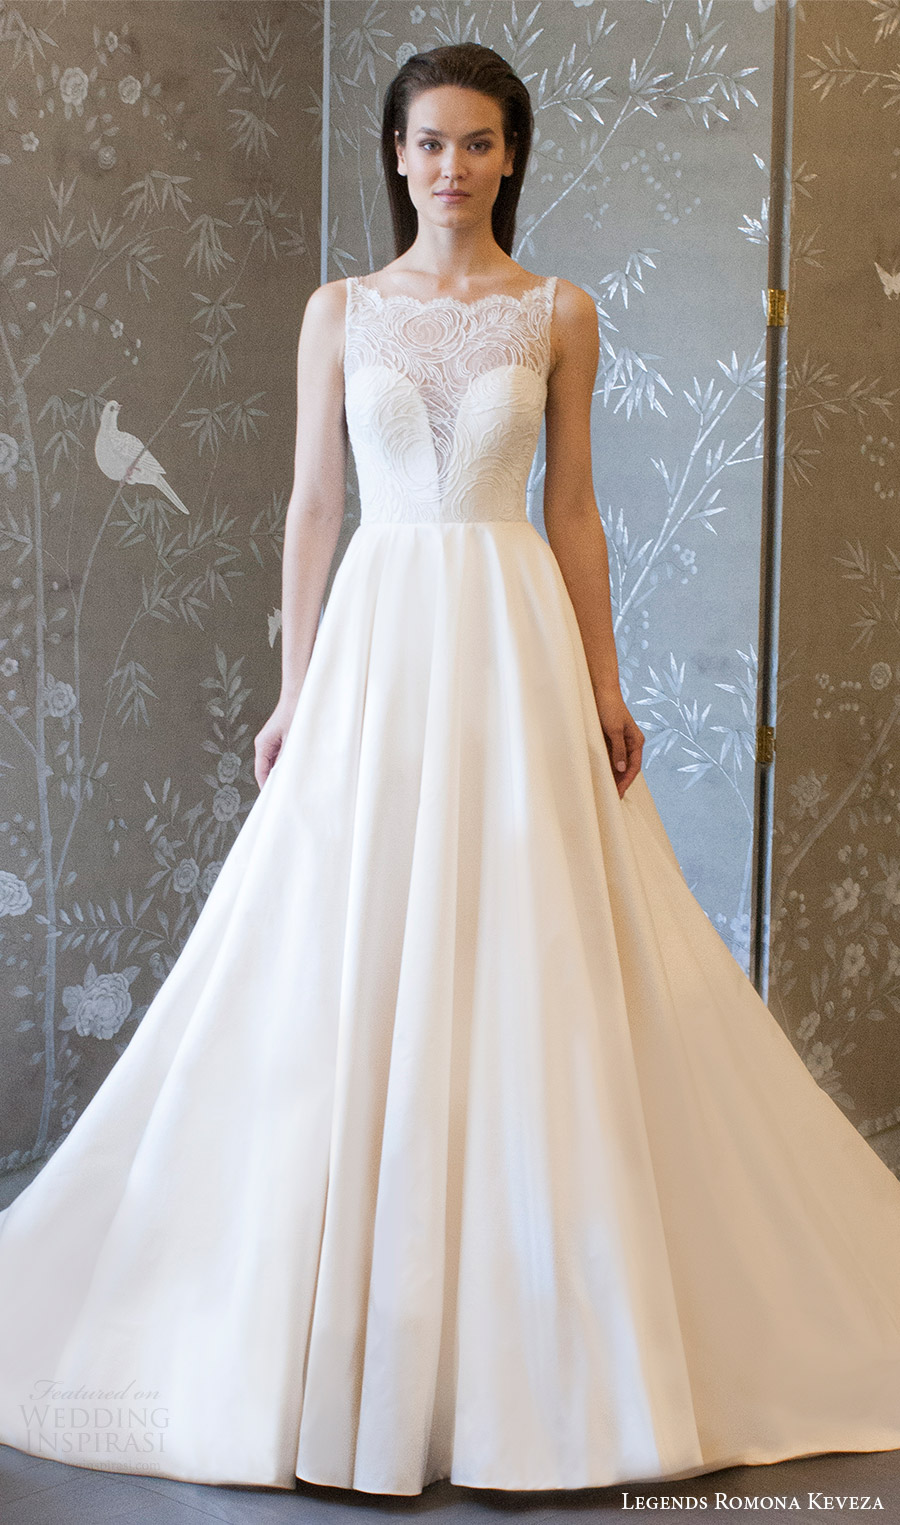 legends romona keveza spring 2018 bridal sleeveless illusion scoop neck split sweetheart a line ball gown wedding dress (l813) mv elegant train